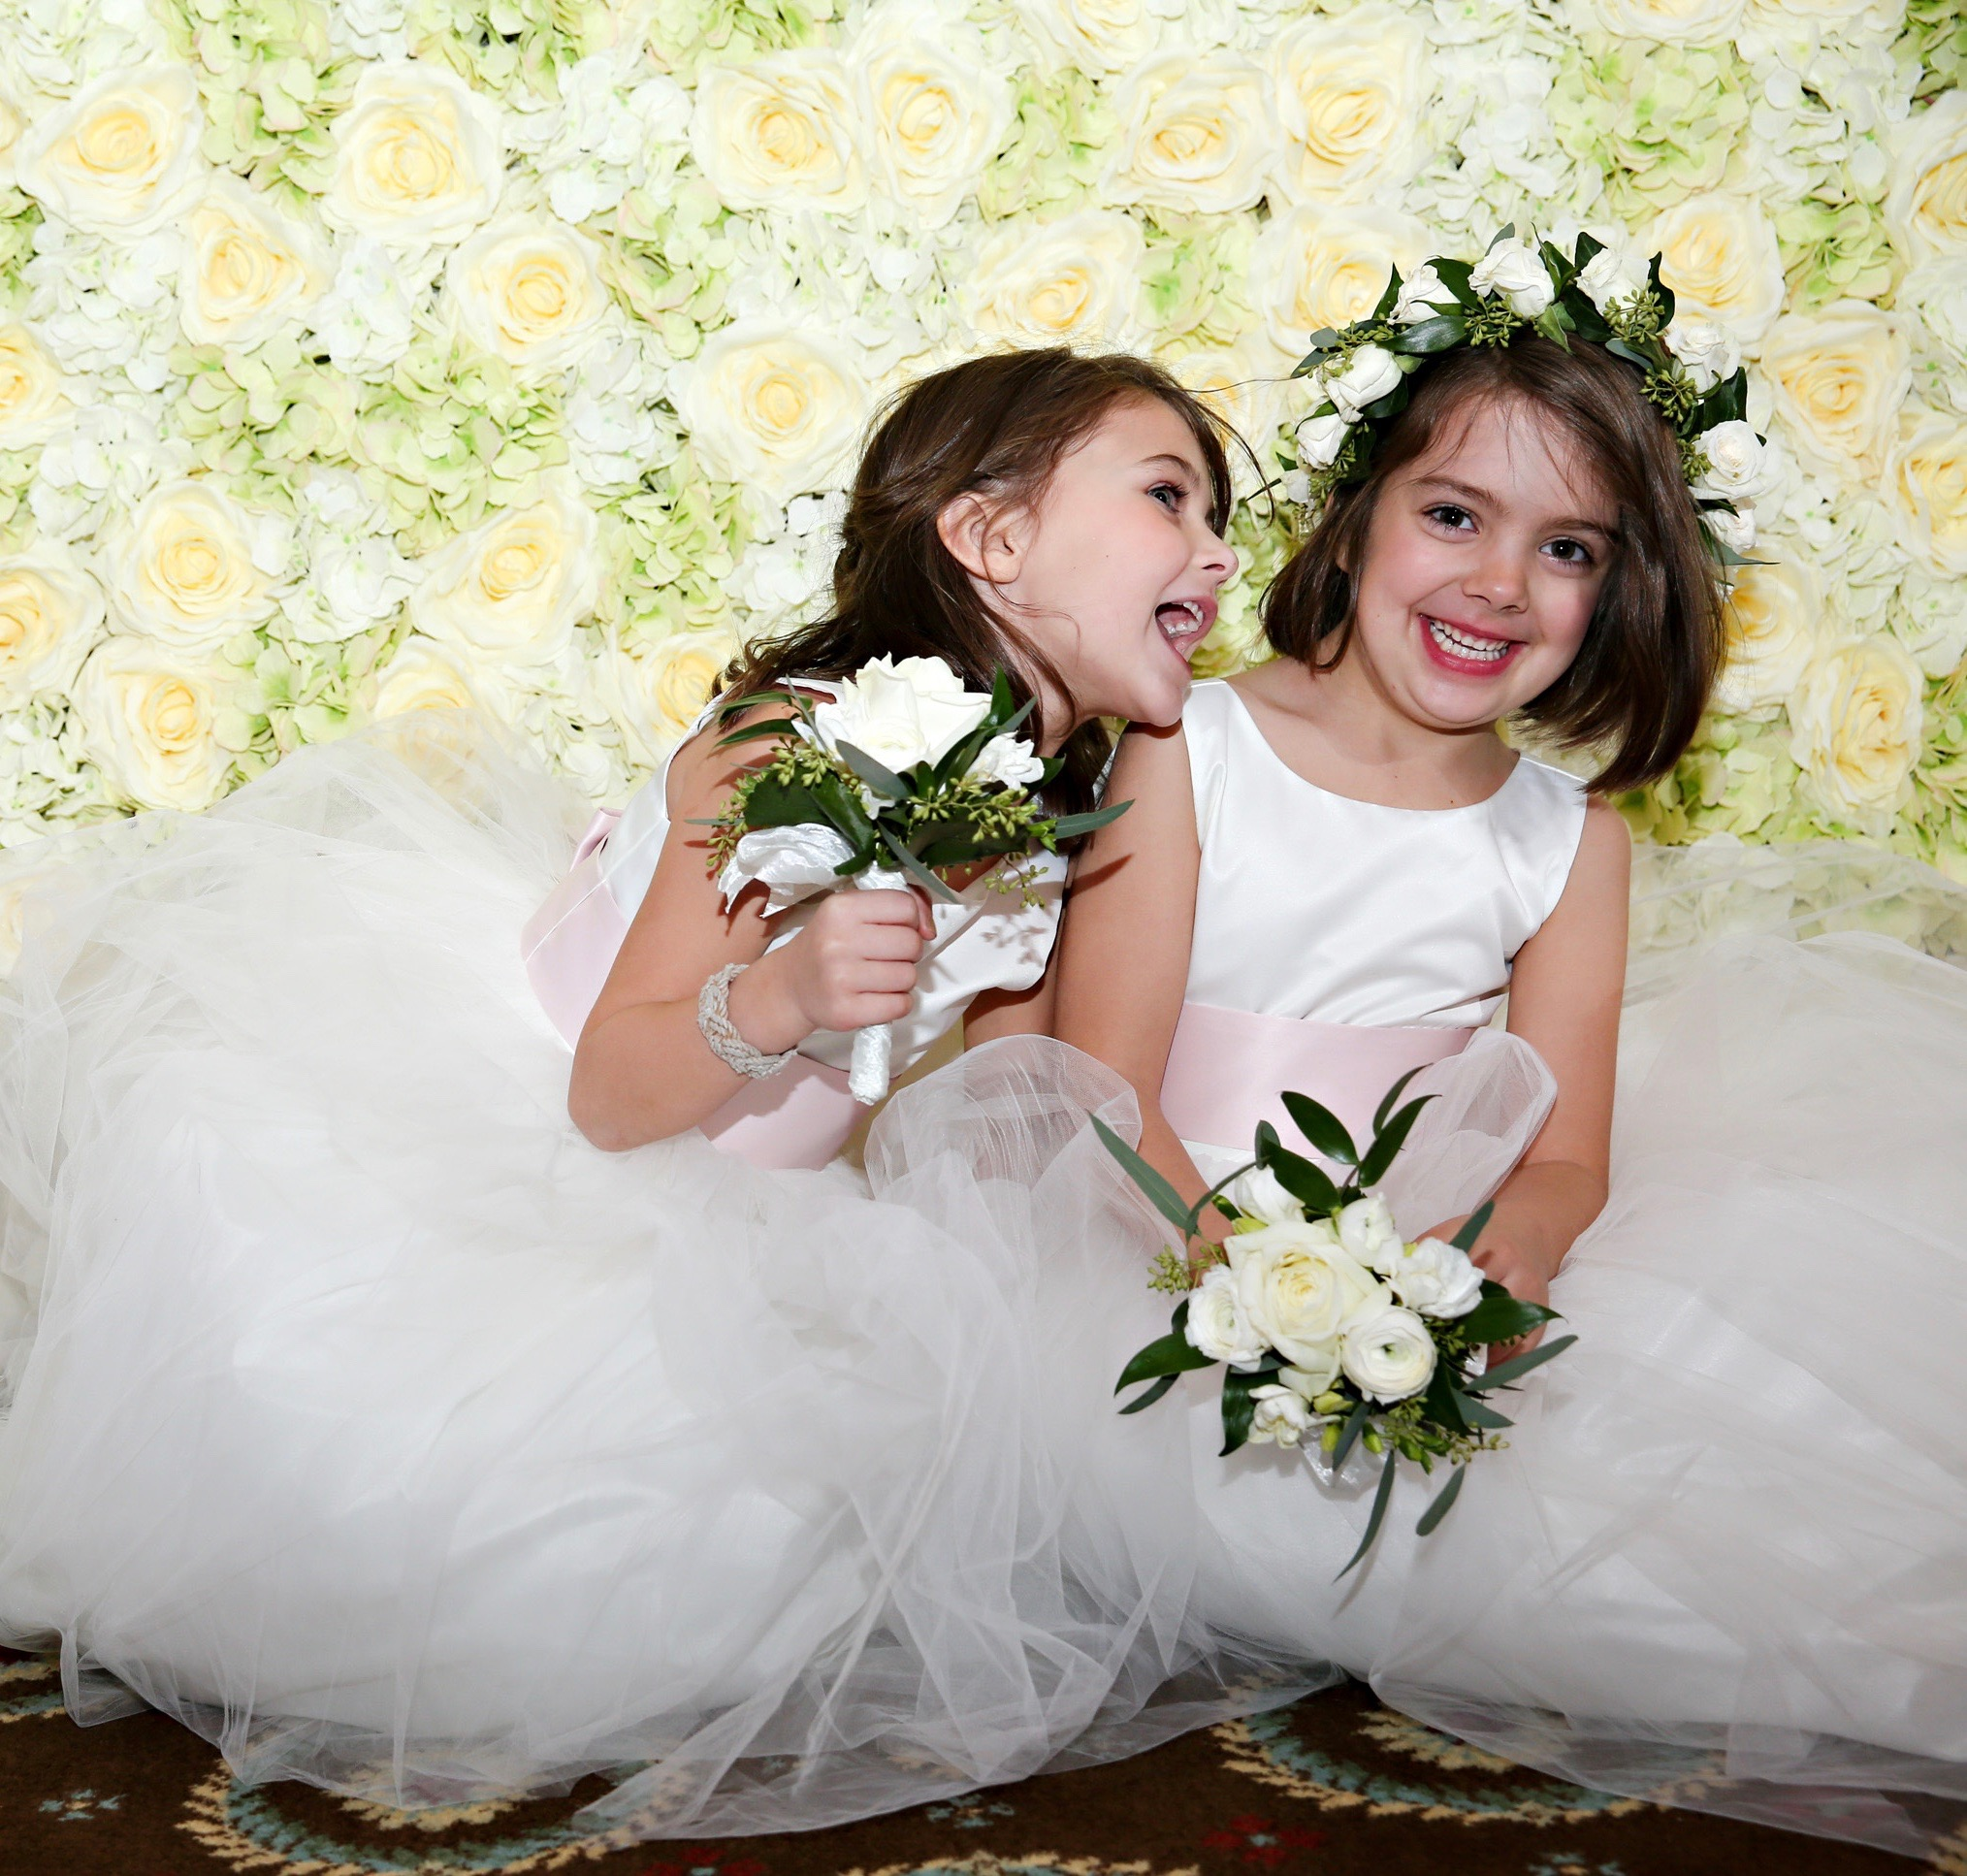 My Darling Daughter And Niece Were Two Of Flower Girls Carrying A Little Posy Each With Crown Here They Are Sitting In Front